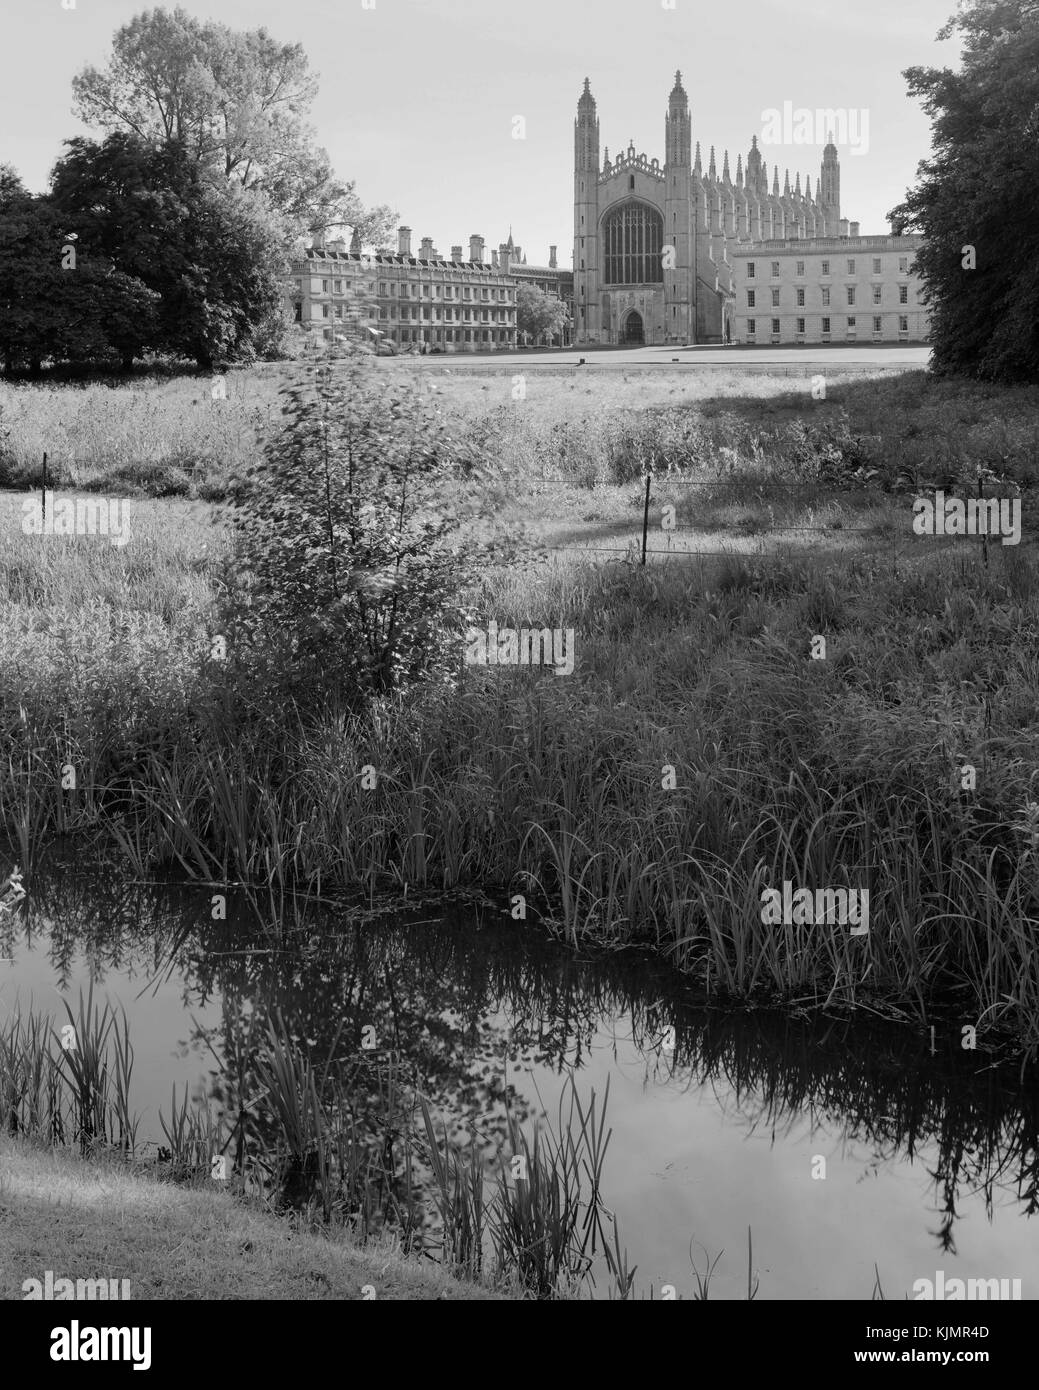 King's College Chapel and Clare College Cambridge from the Backs - Stock Image